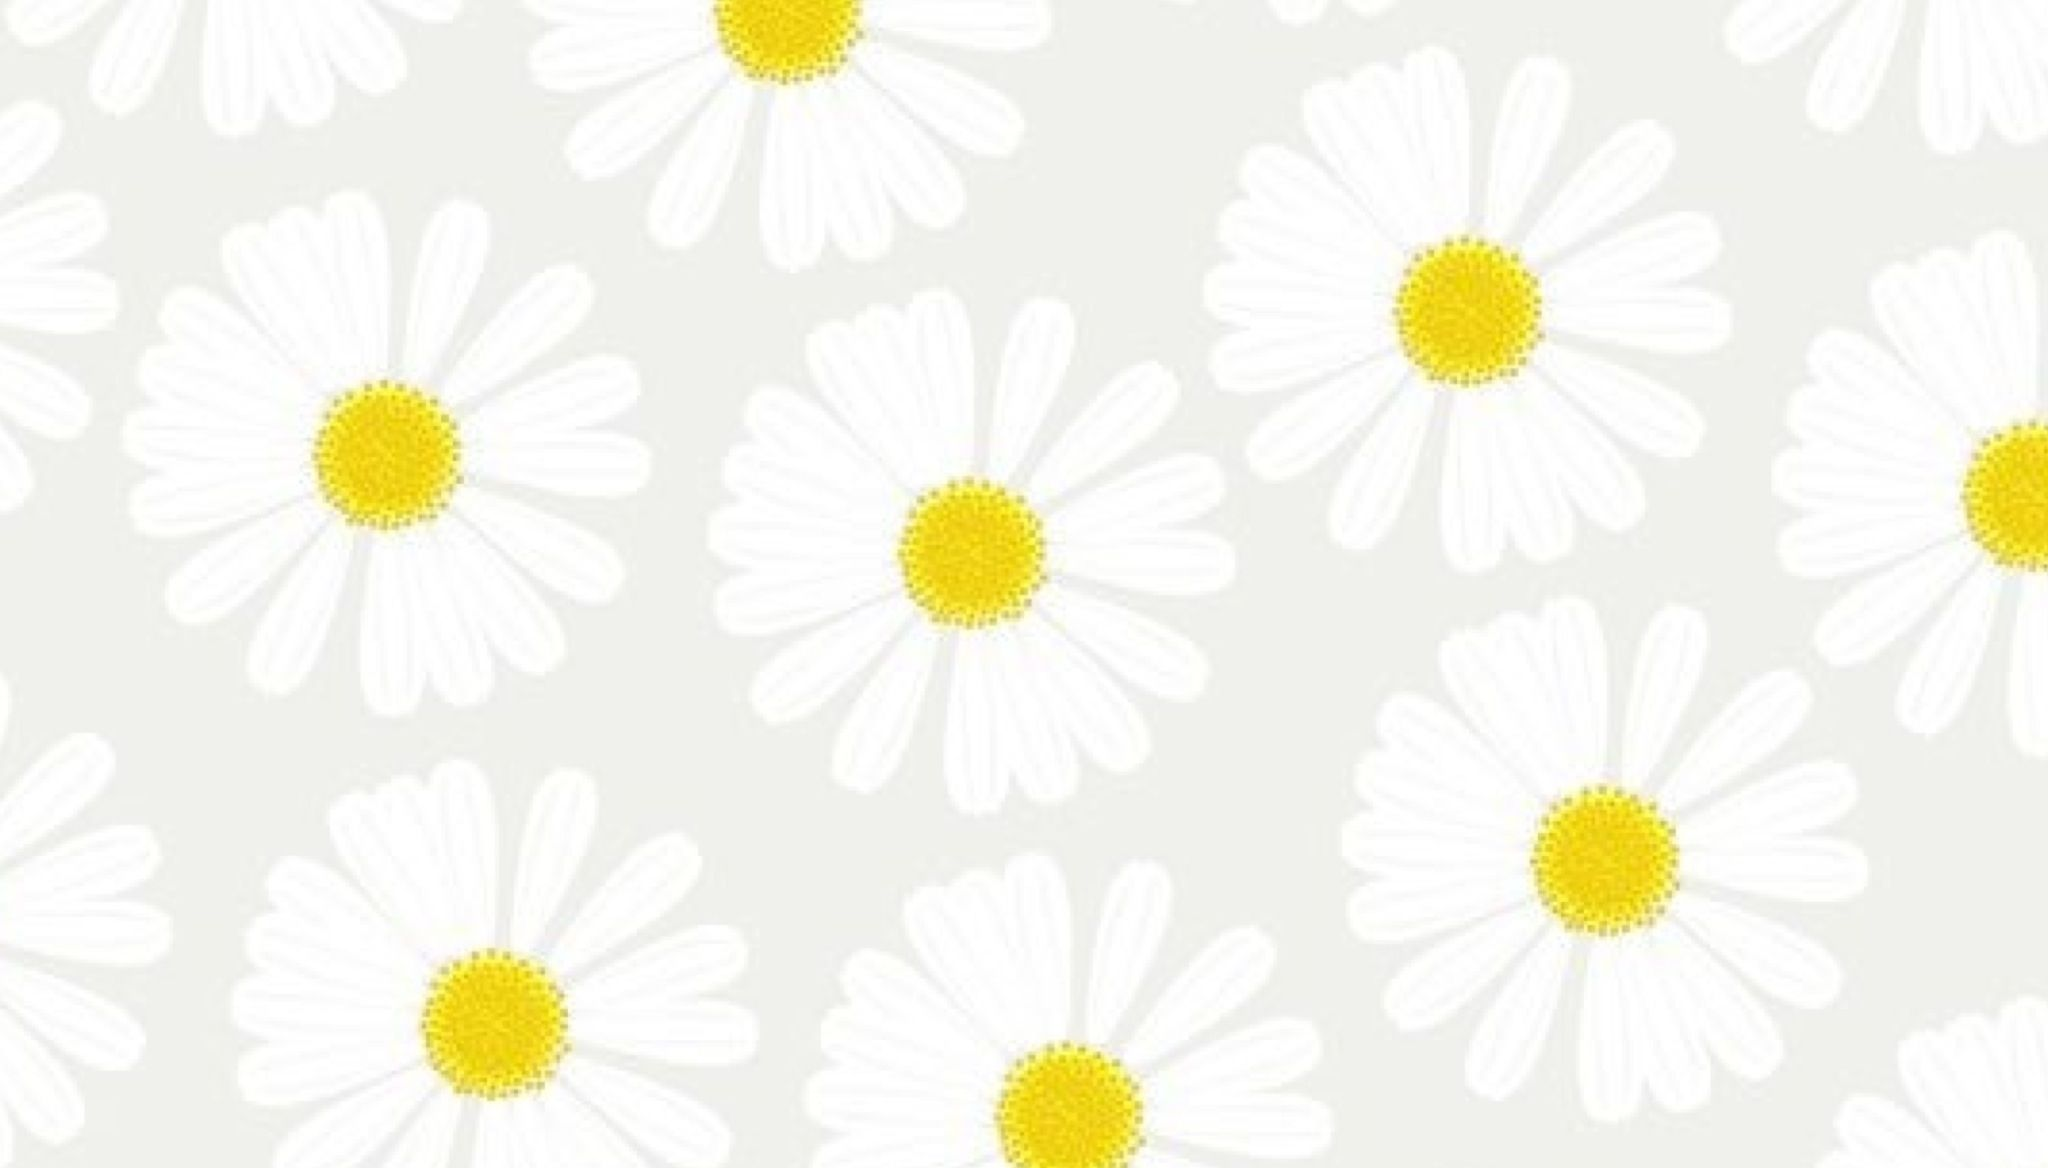 Daisy pattern wallpaper - photo#35